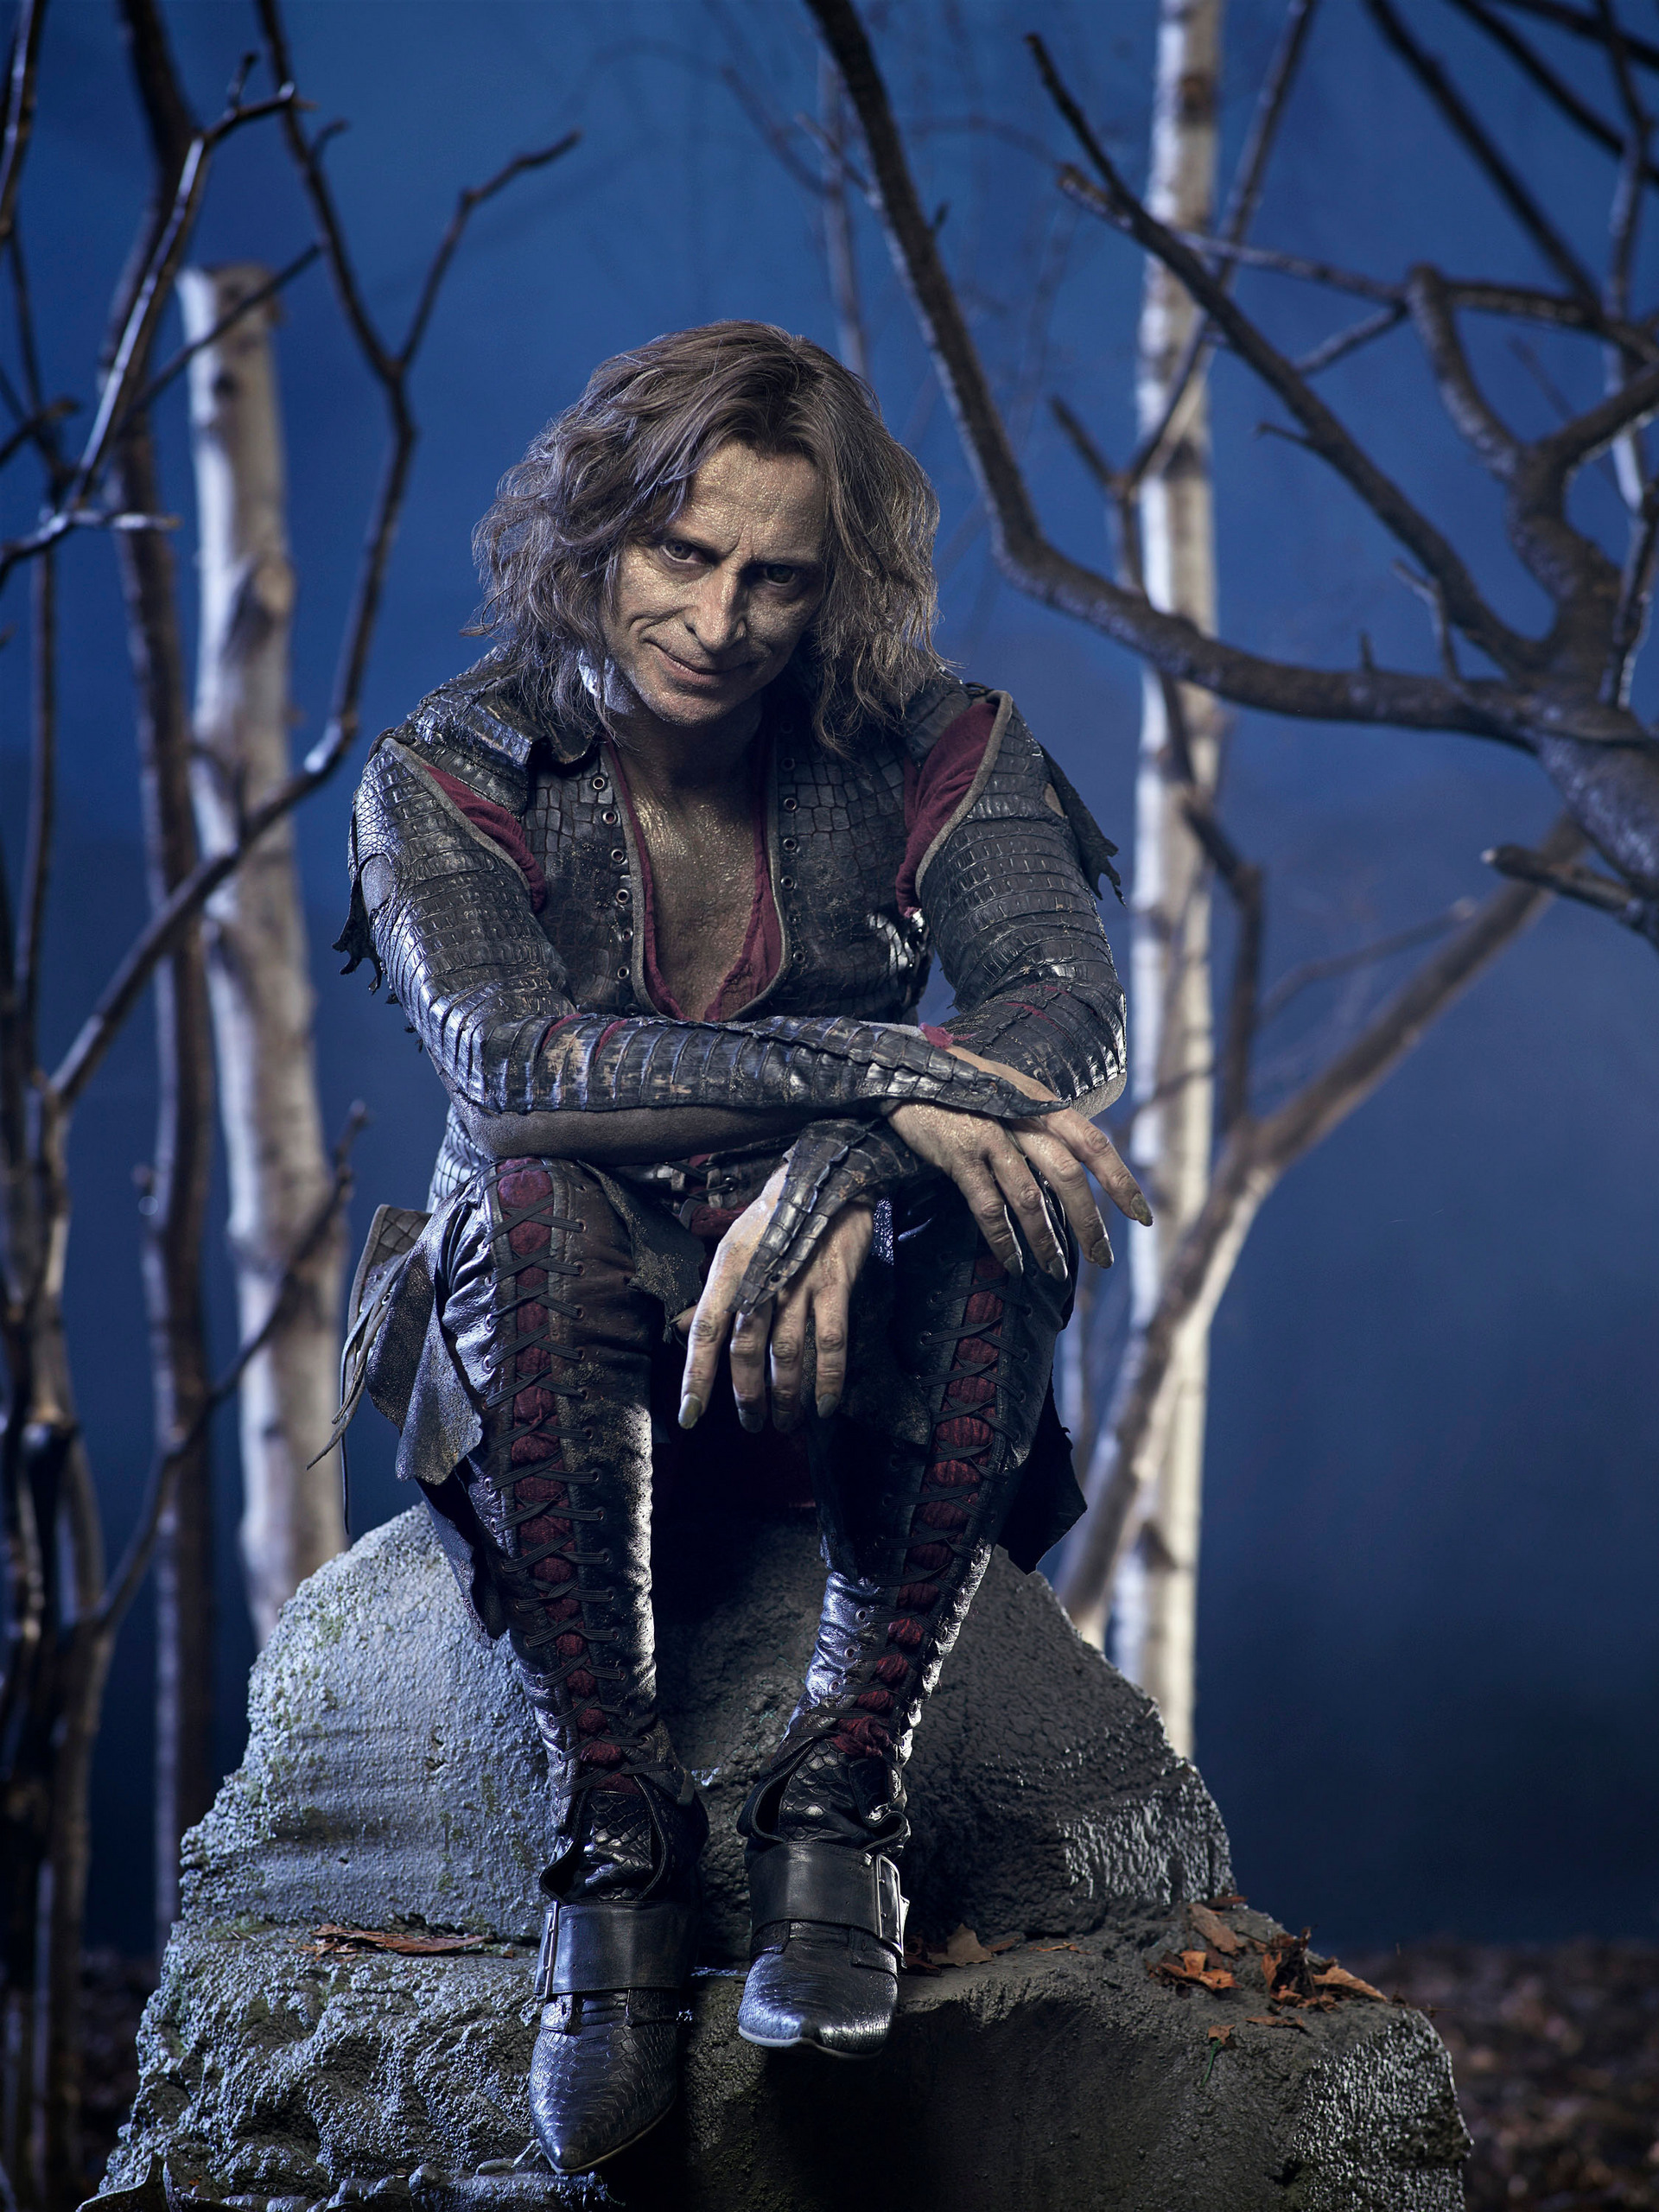 the powerful attribute of greed in the story of rumpelstiltskin